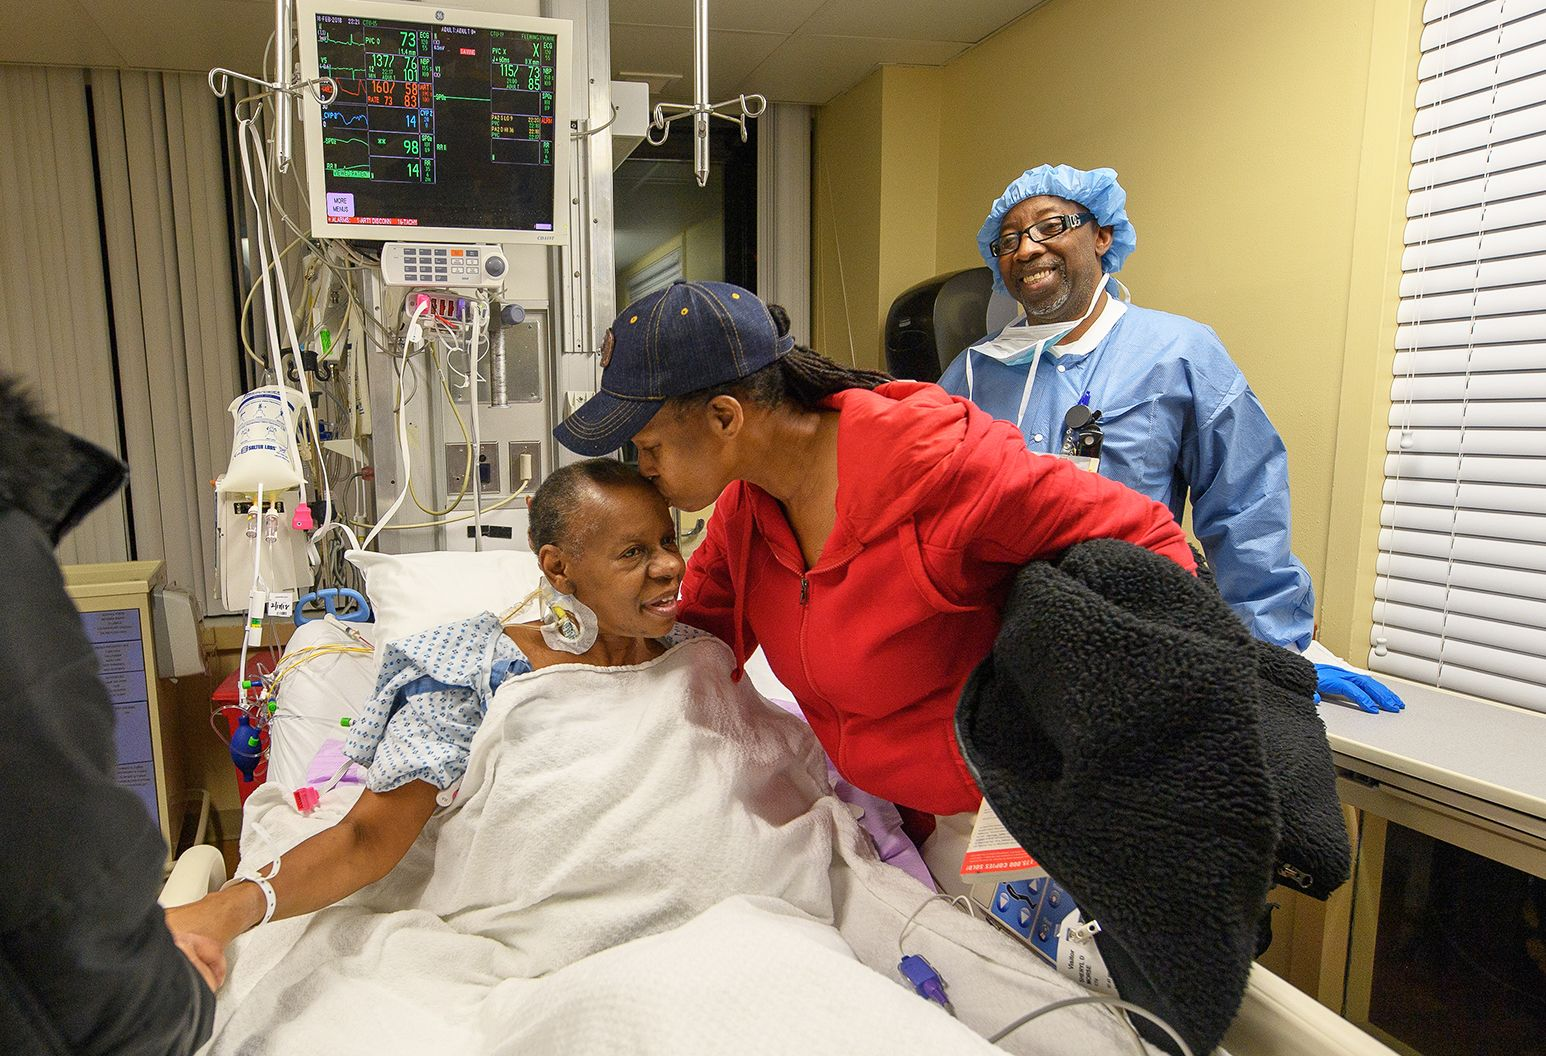 A woman in a blue baseball hat and red sweatshirt kisses a woman sitting in a hospital bed on the forehead. A man in surgical scrubs stands to the side and looks on.